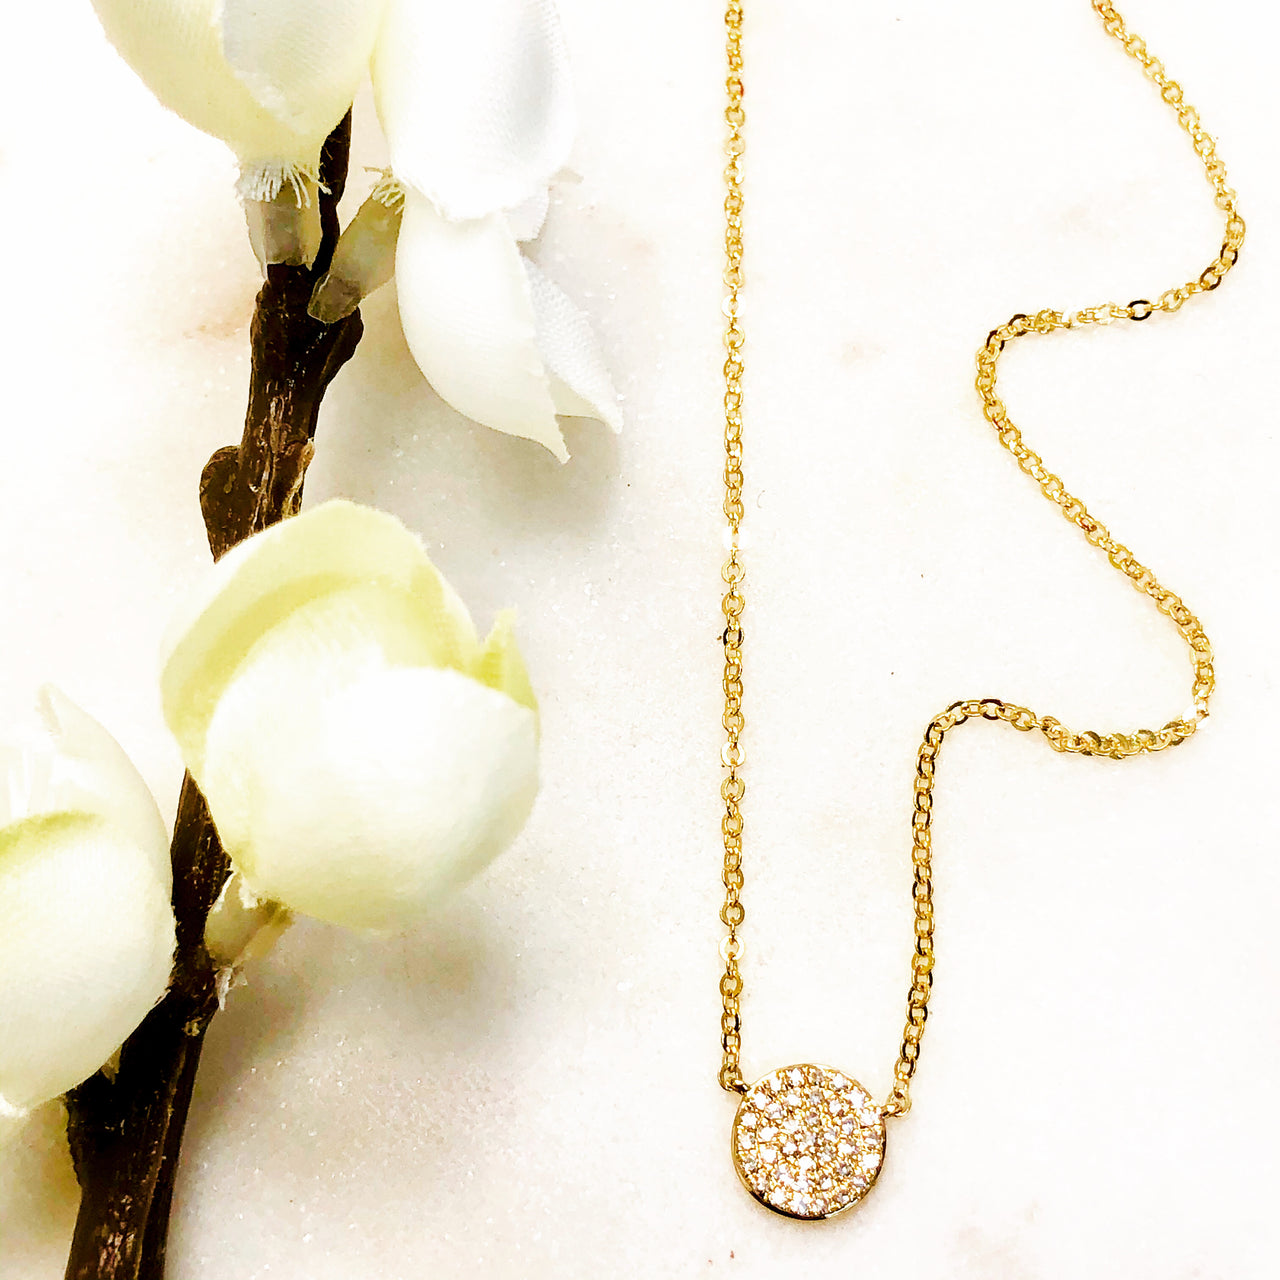 14K Yellow Gold Diamond Necklace.